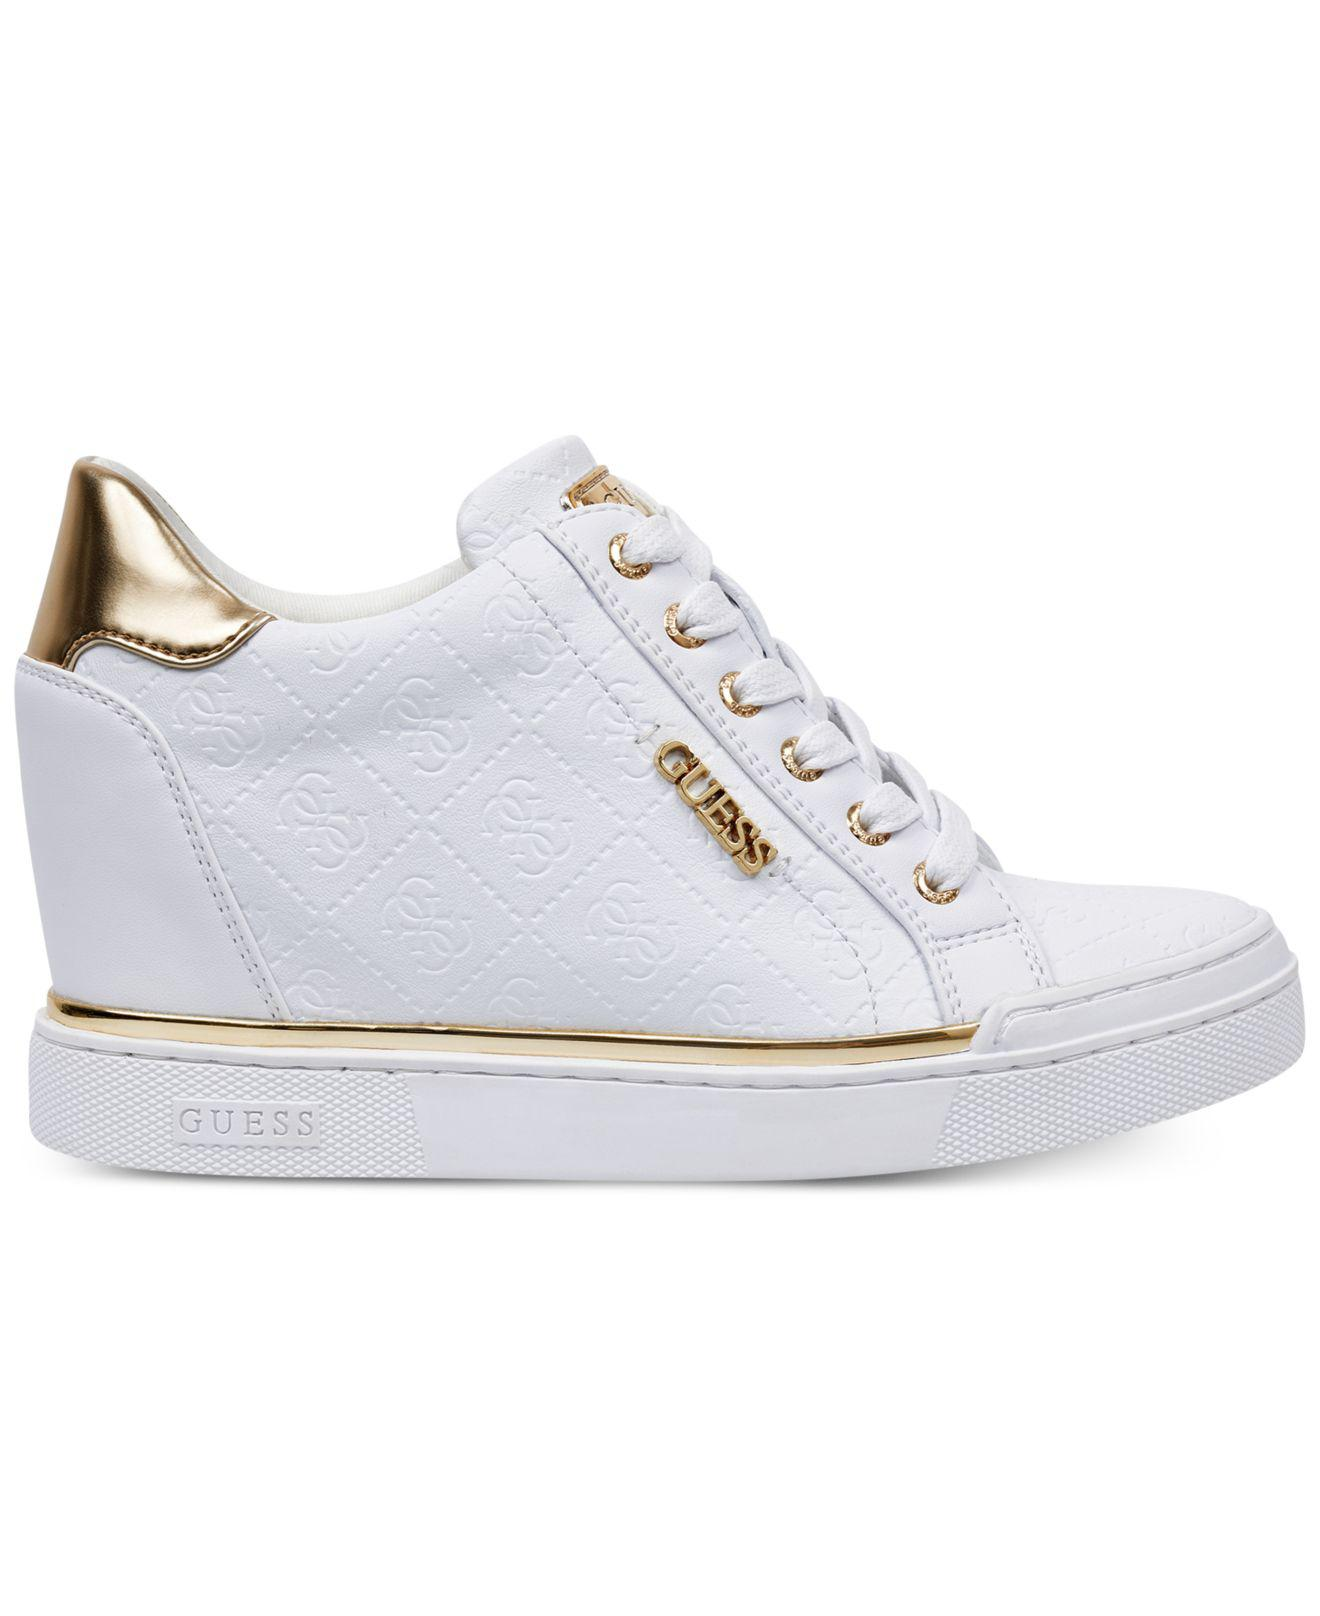 Wedge Sneakers Lyst Flowurs In Guess White oQrdCexBW